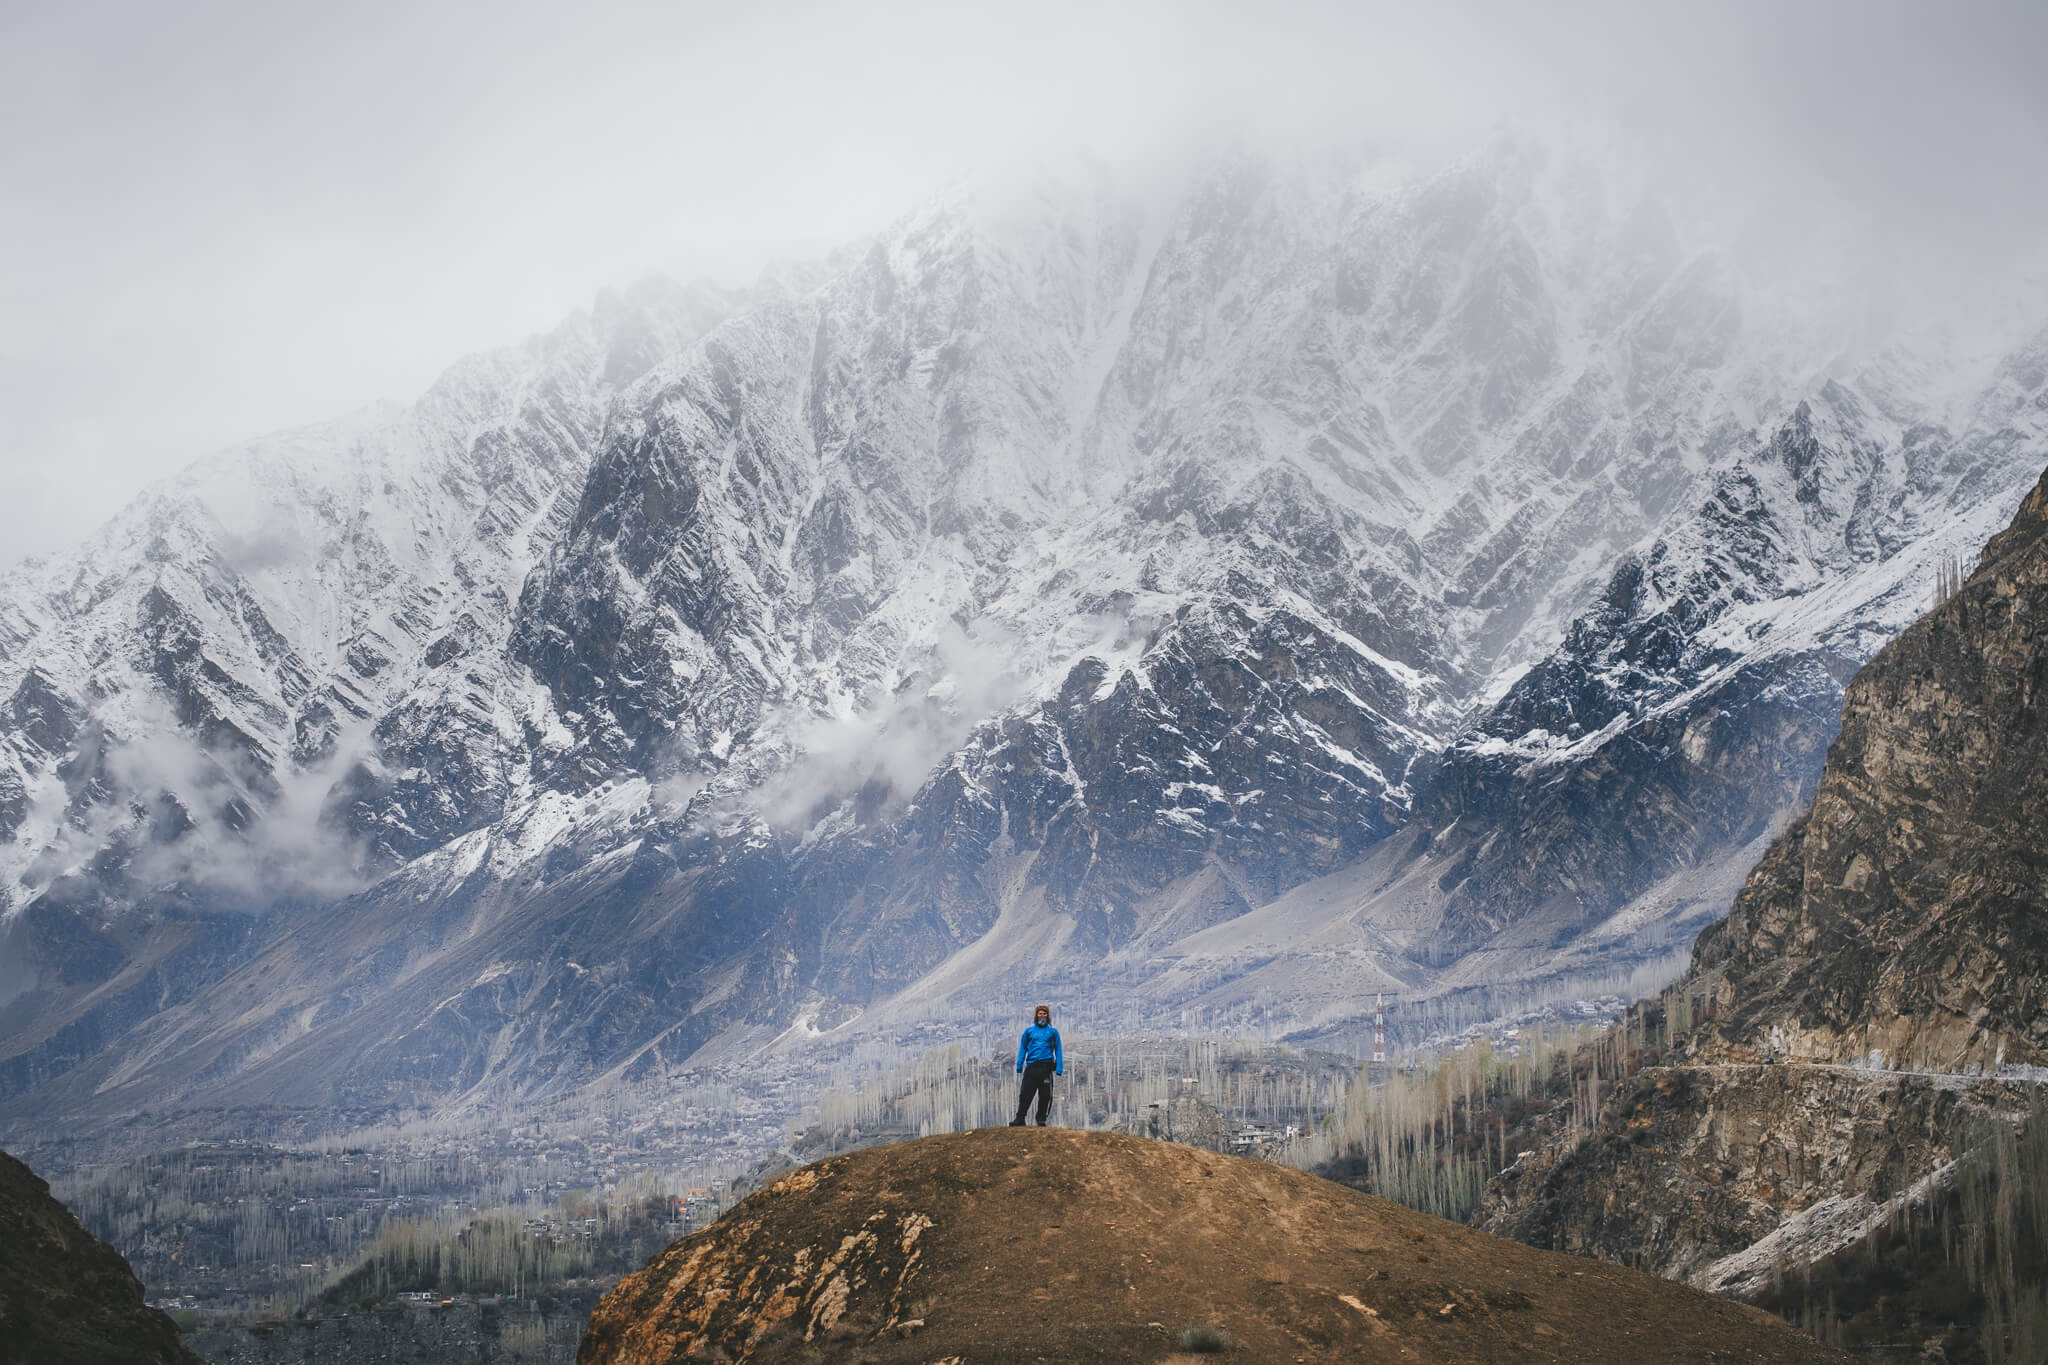 Will reflects on his life and self while below a mountain in Pakistan